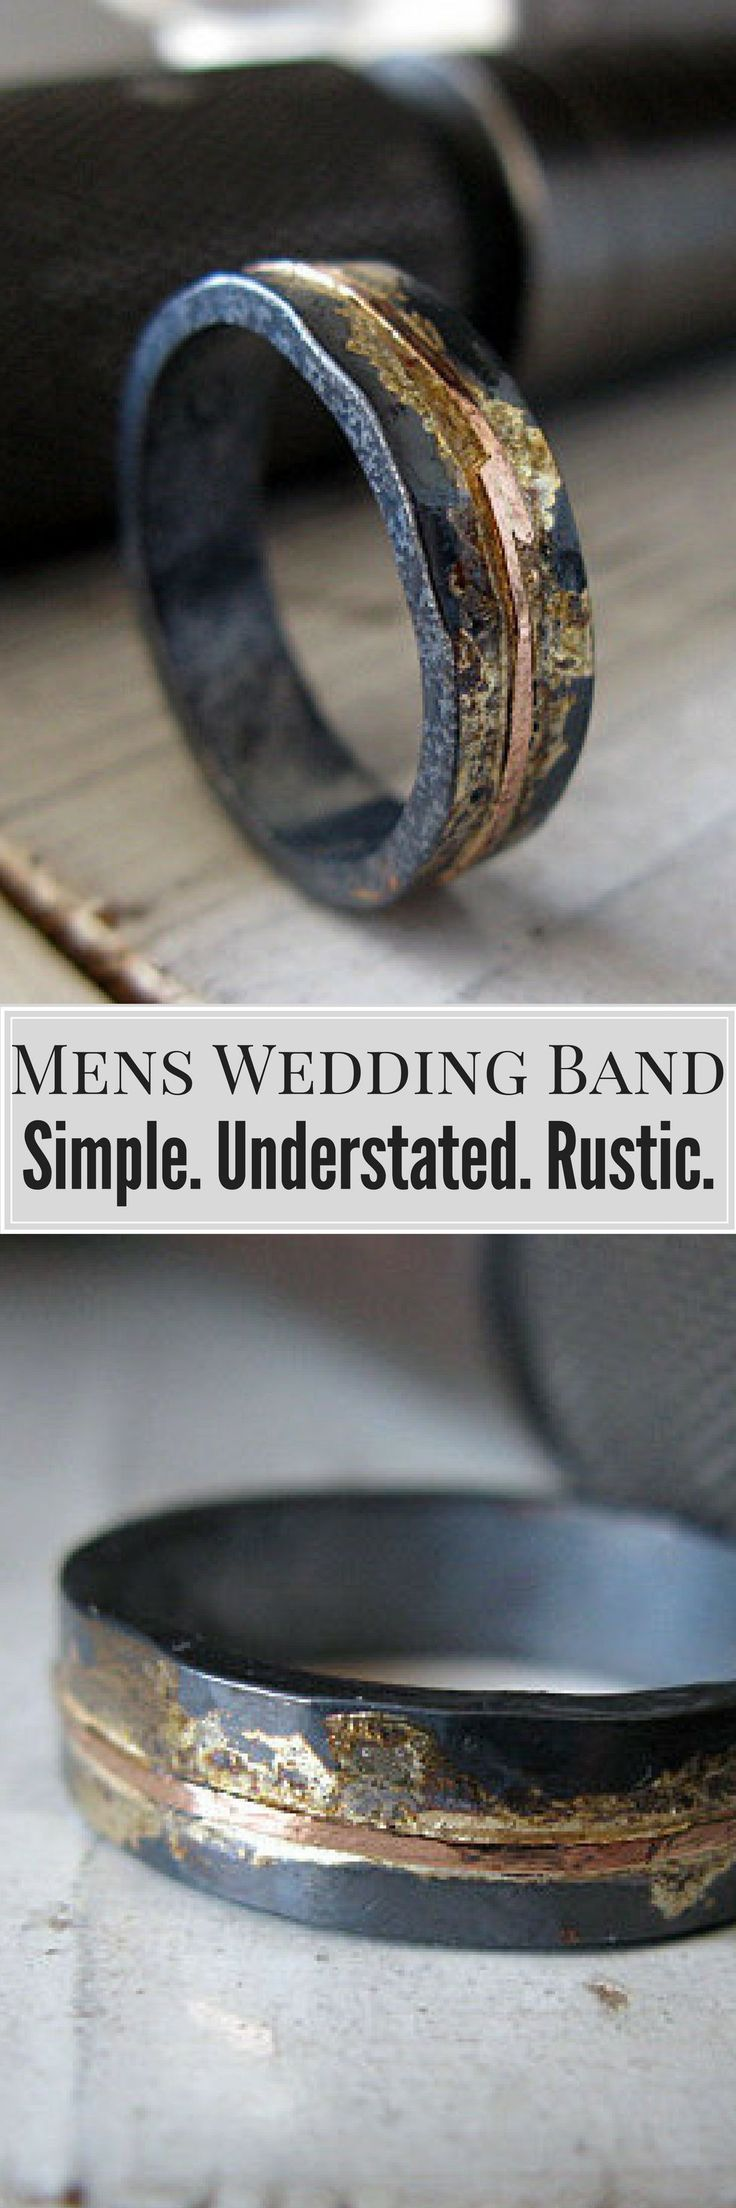 This design is an edgy wedding band or chic fashion ring - for man or woman!   Mens Wedding Band Mens  Wedding Ring Oxidized Ring Black Gold Ring Rustic Ring Unique Wedding  Band Viking Wedding Ring Mens Wedding Bands Wedding Ideas #weddingrings #ad #weddingideas #menweddingrings #goldweddingring #uniqueweddingideas